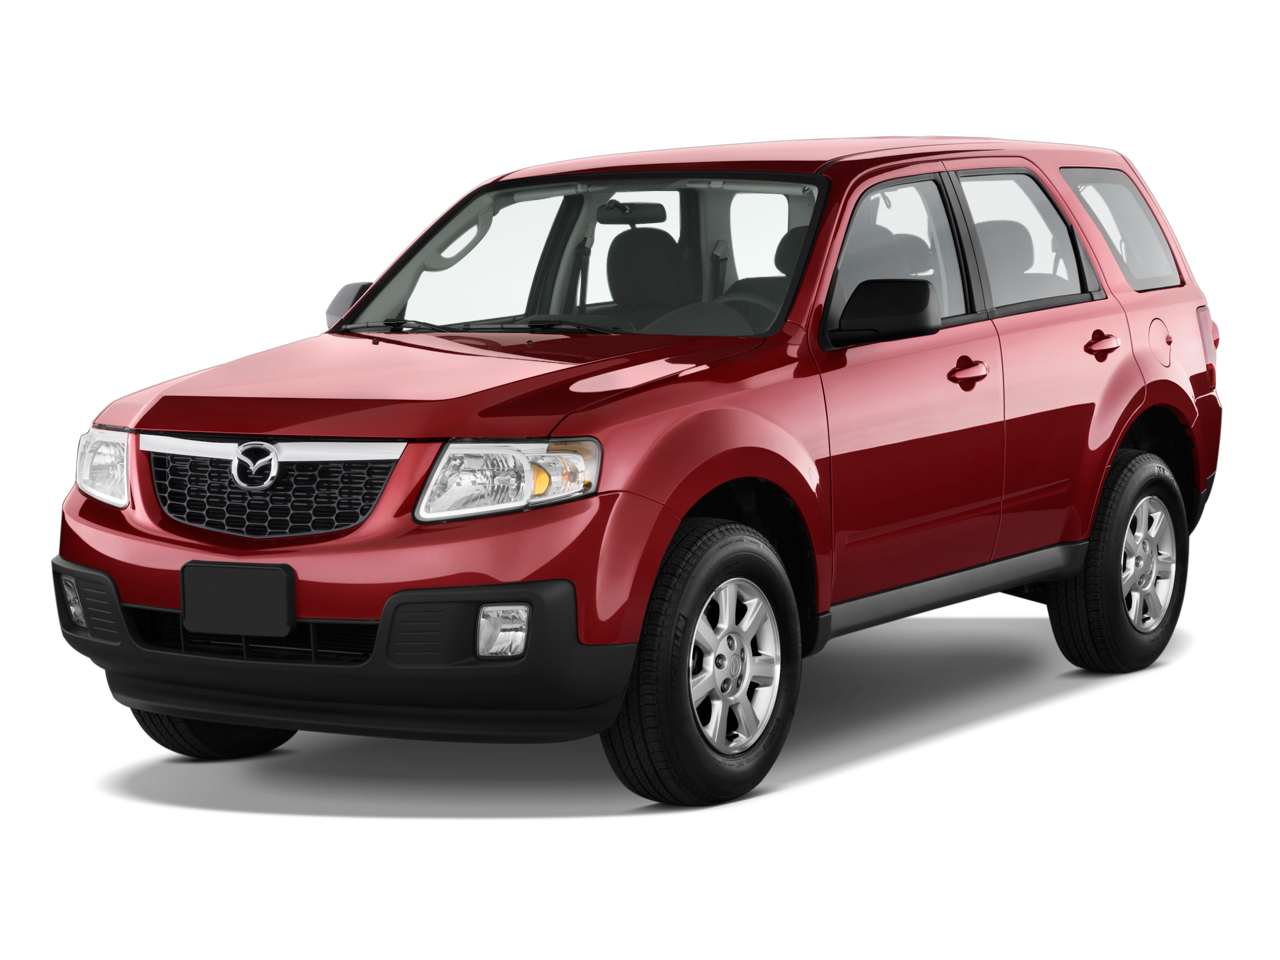 38 Concept of 2019 Mazda Tribute Price and Review for 2019 Mazda Tribute